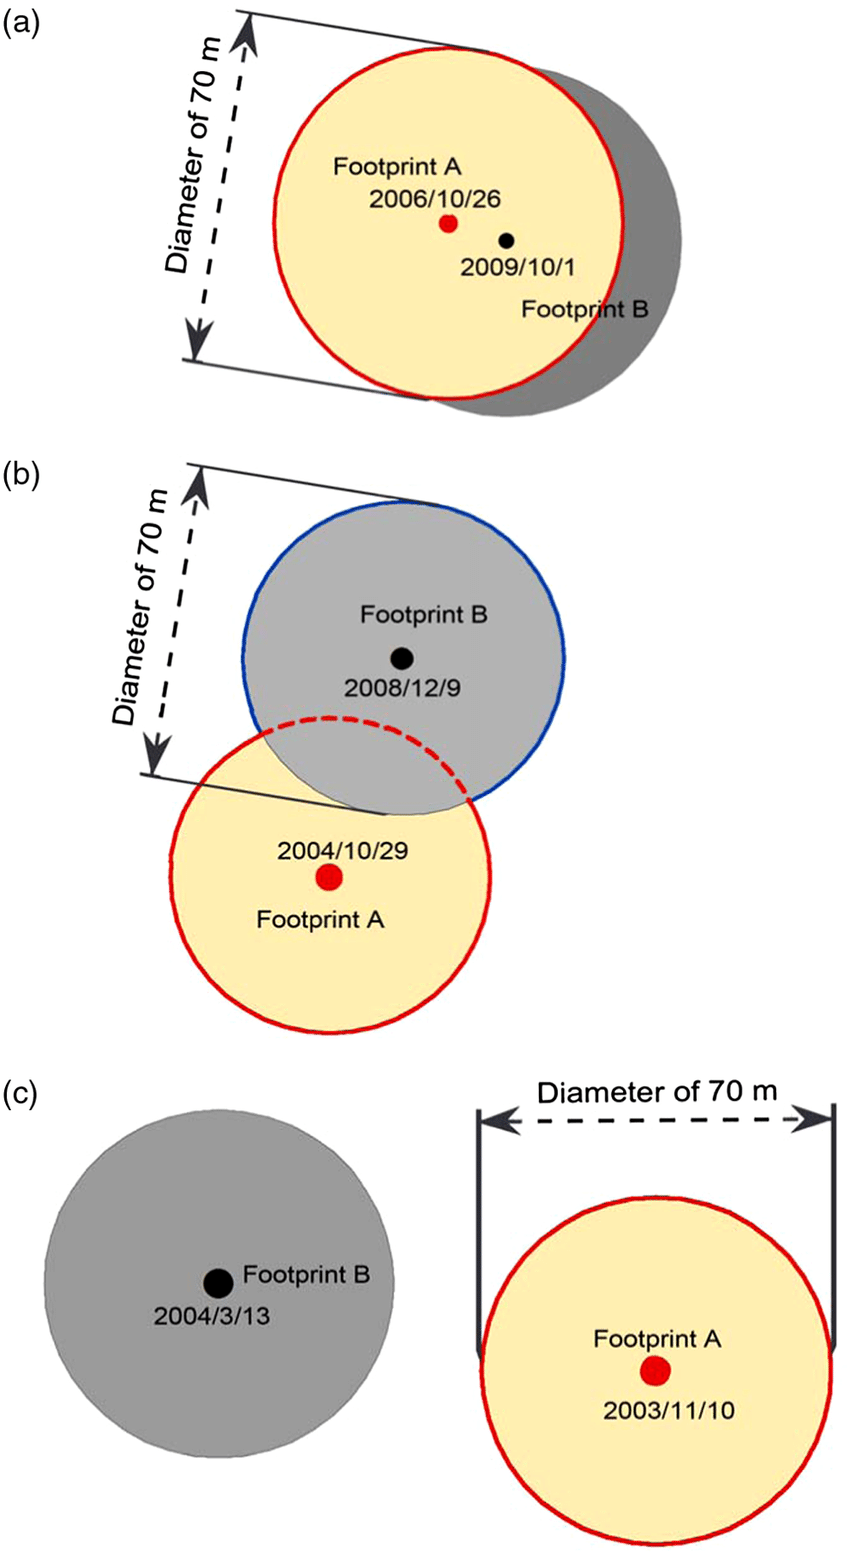 medium resolution of the schematic diagram shows all glas footprint profiles on the glacier surfaces and an example of